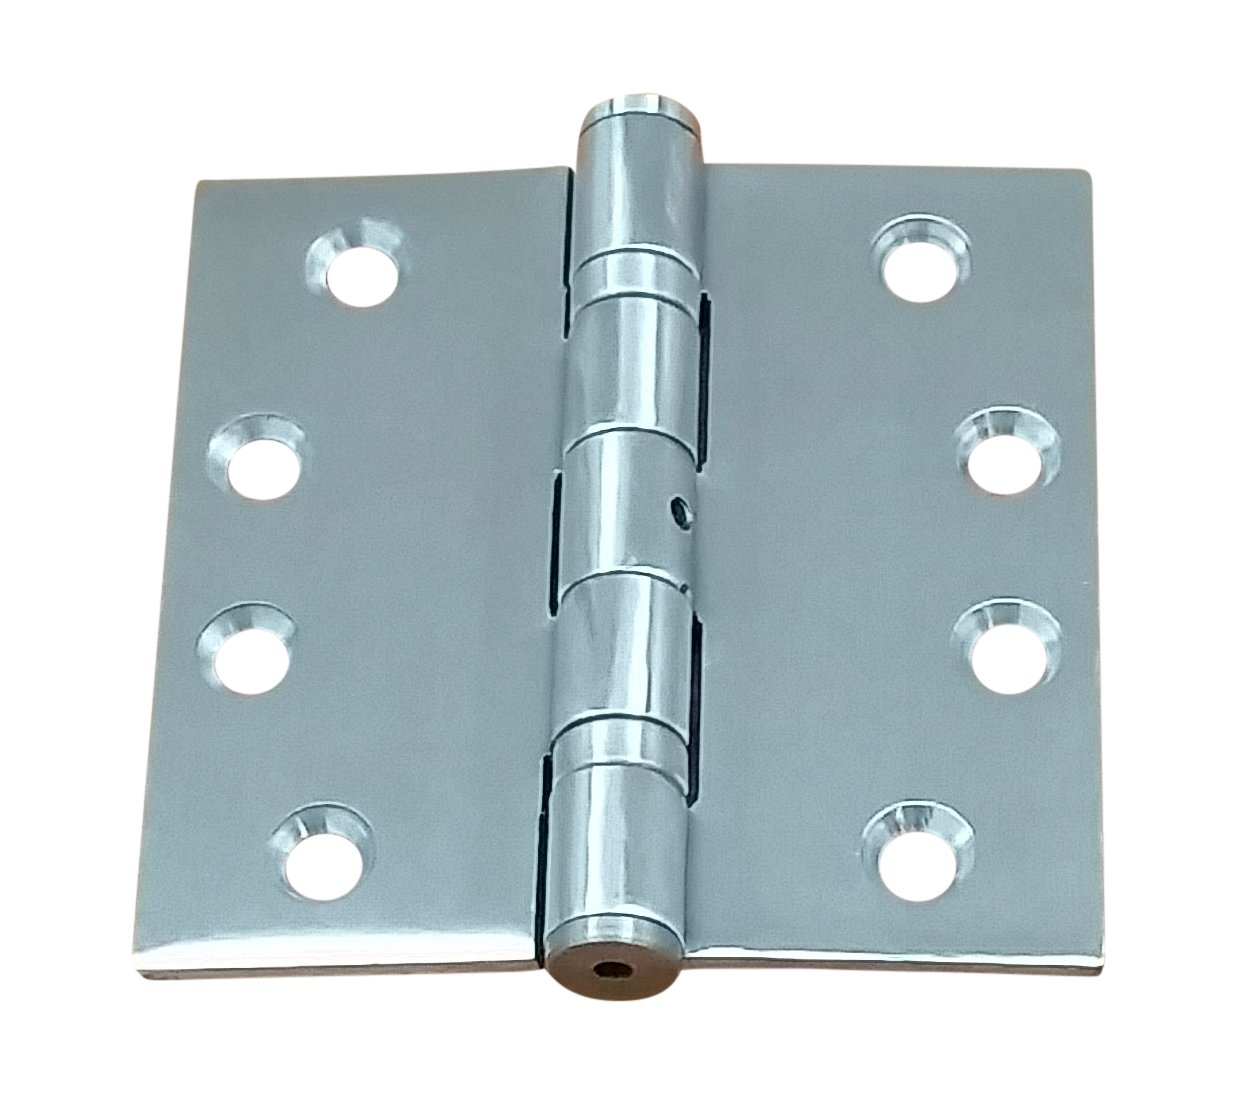 Commercial Grade Ball Bearing Door Hinge 4 Inch Square Full Mortise Stainless Steel - 2 Pack- Highly Rust Resistant